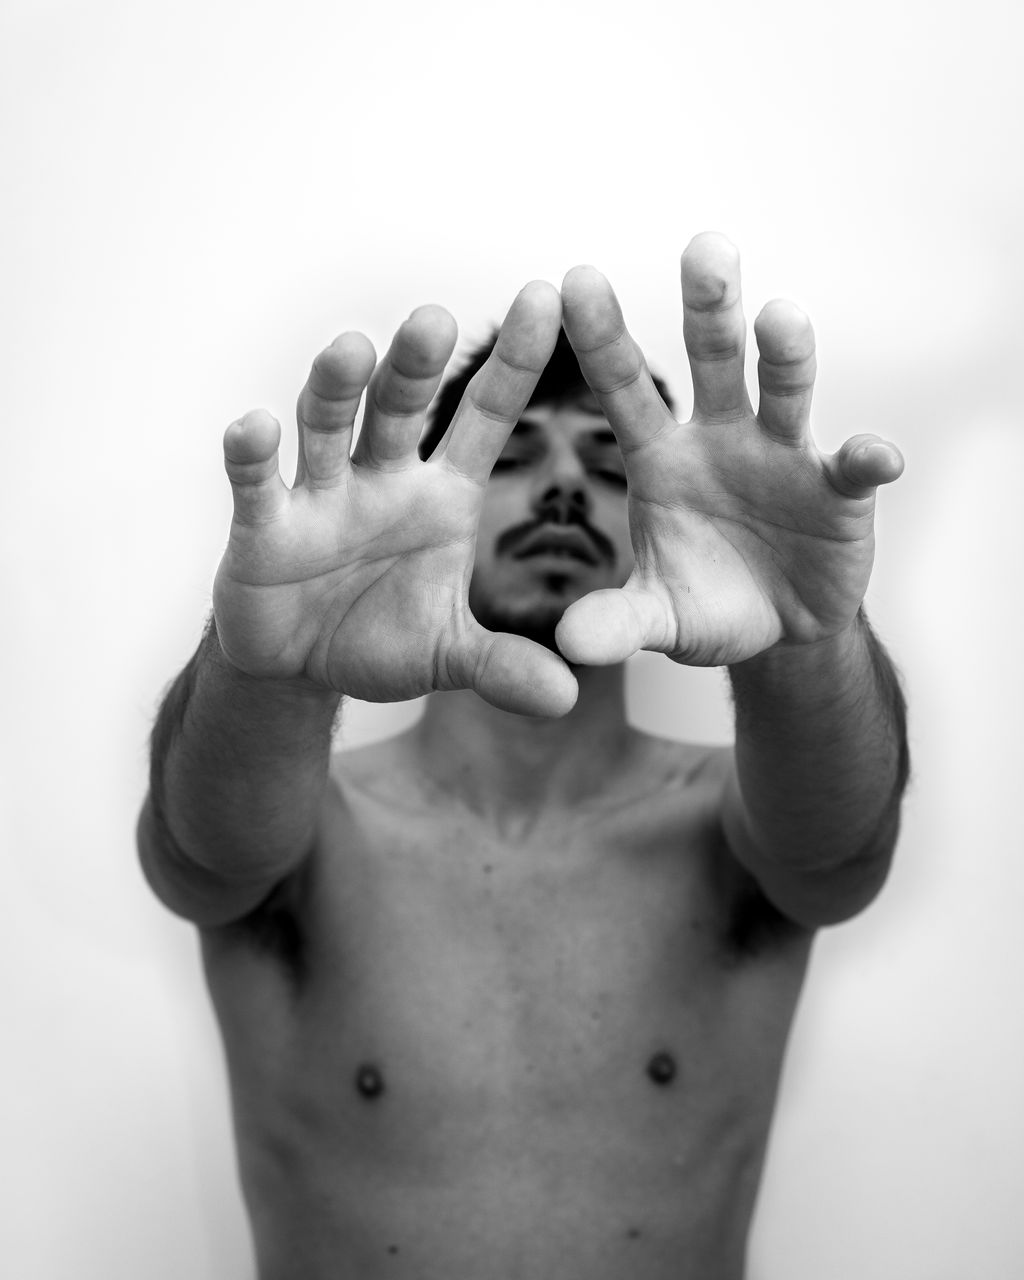 Portrait Of Shirtless Man Gesturing Against White Background